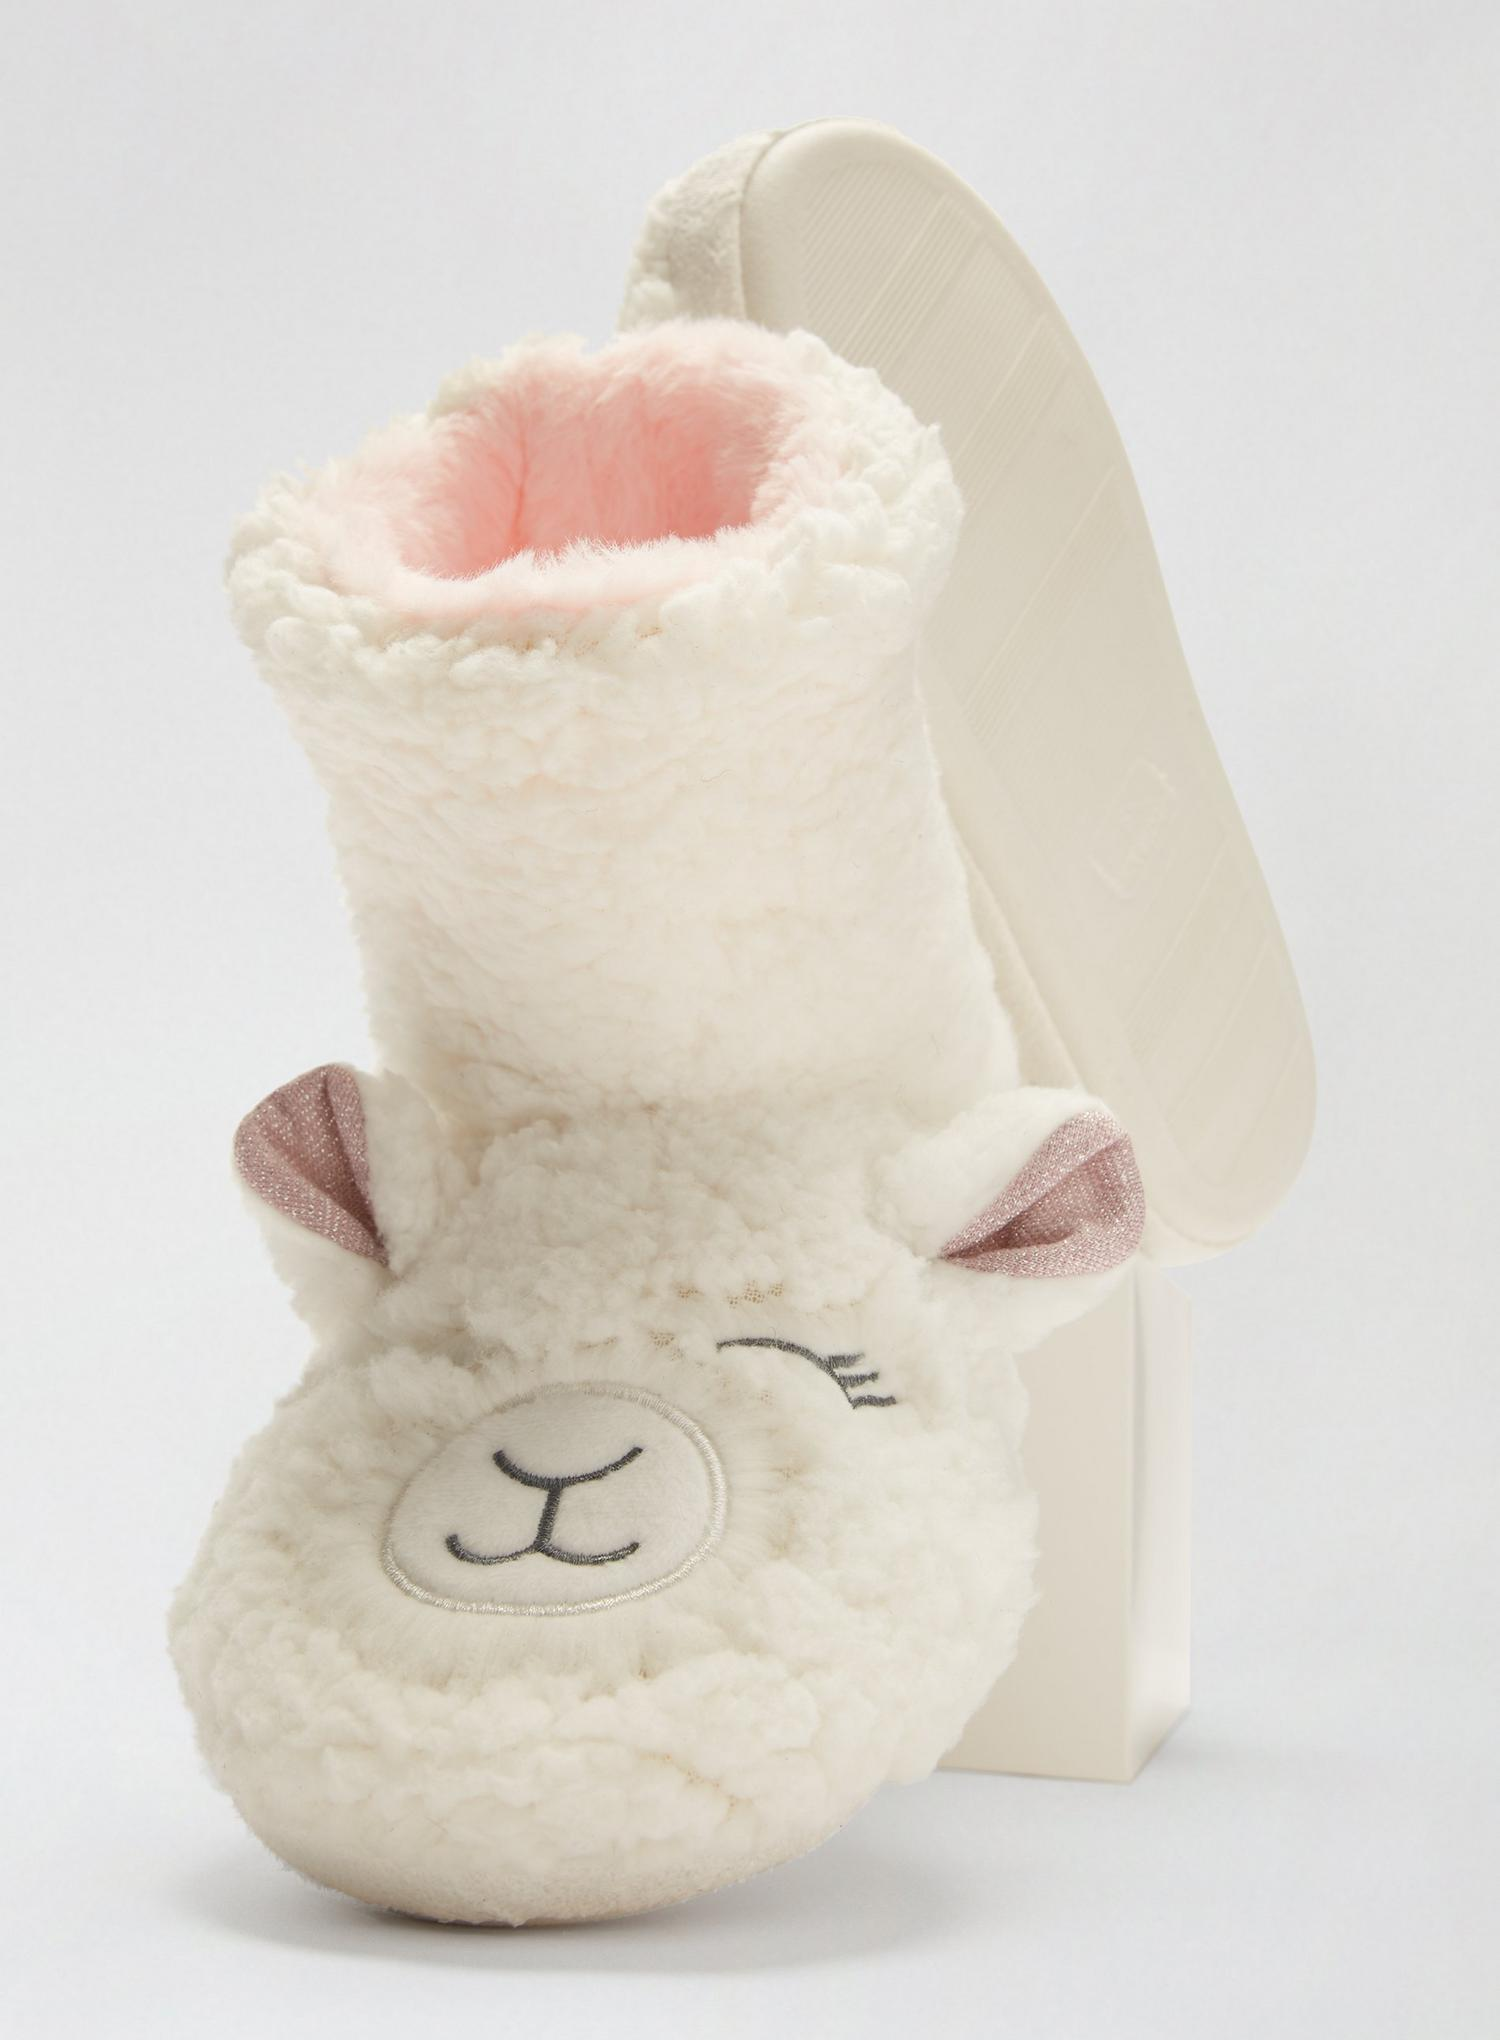 173 White Novelty Lamb Boots image number 4